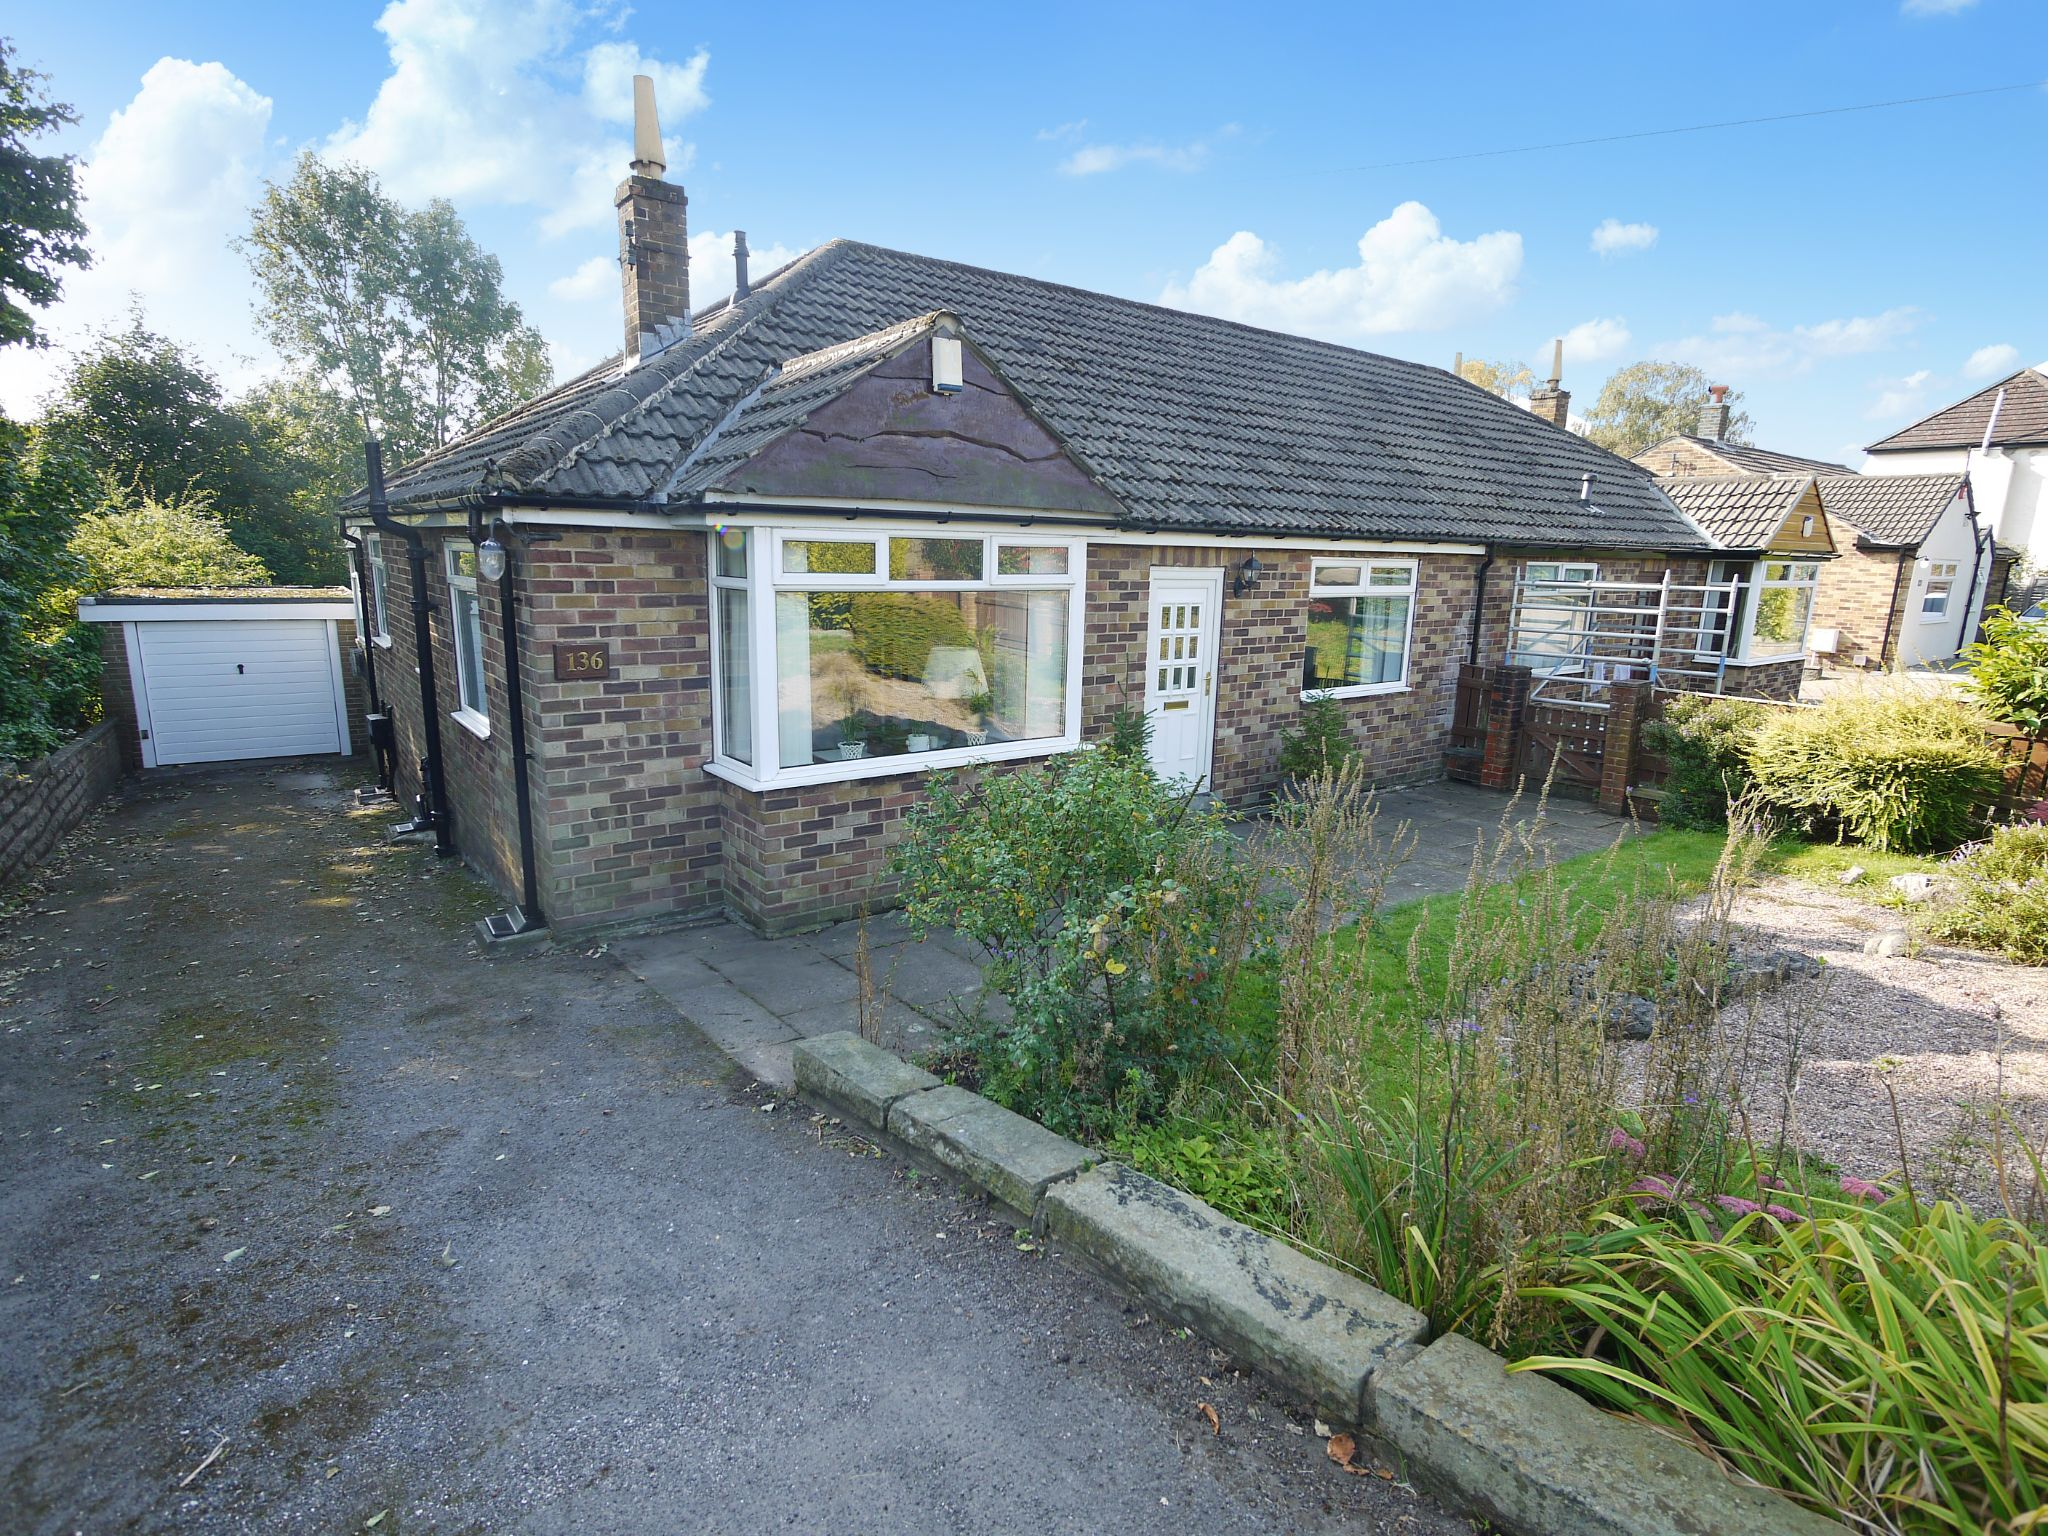 2 bedroom semi-detached bungalow SSTC in Halifax - Photograph 3.